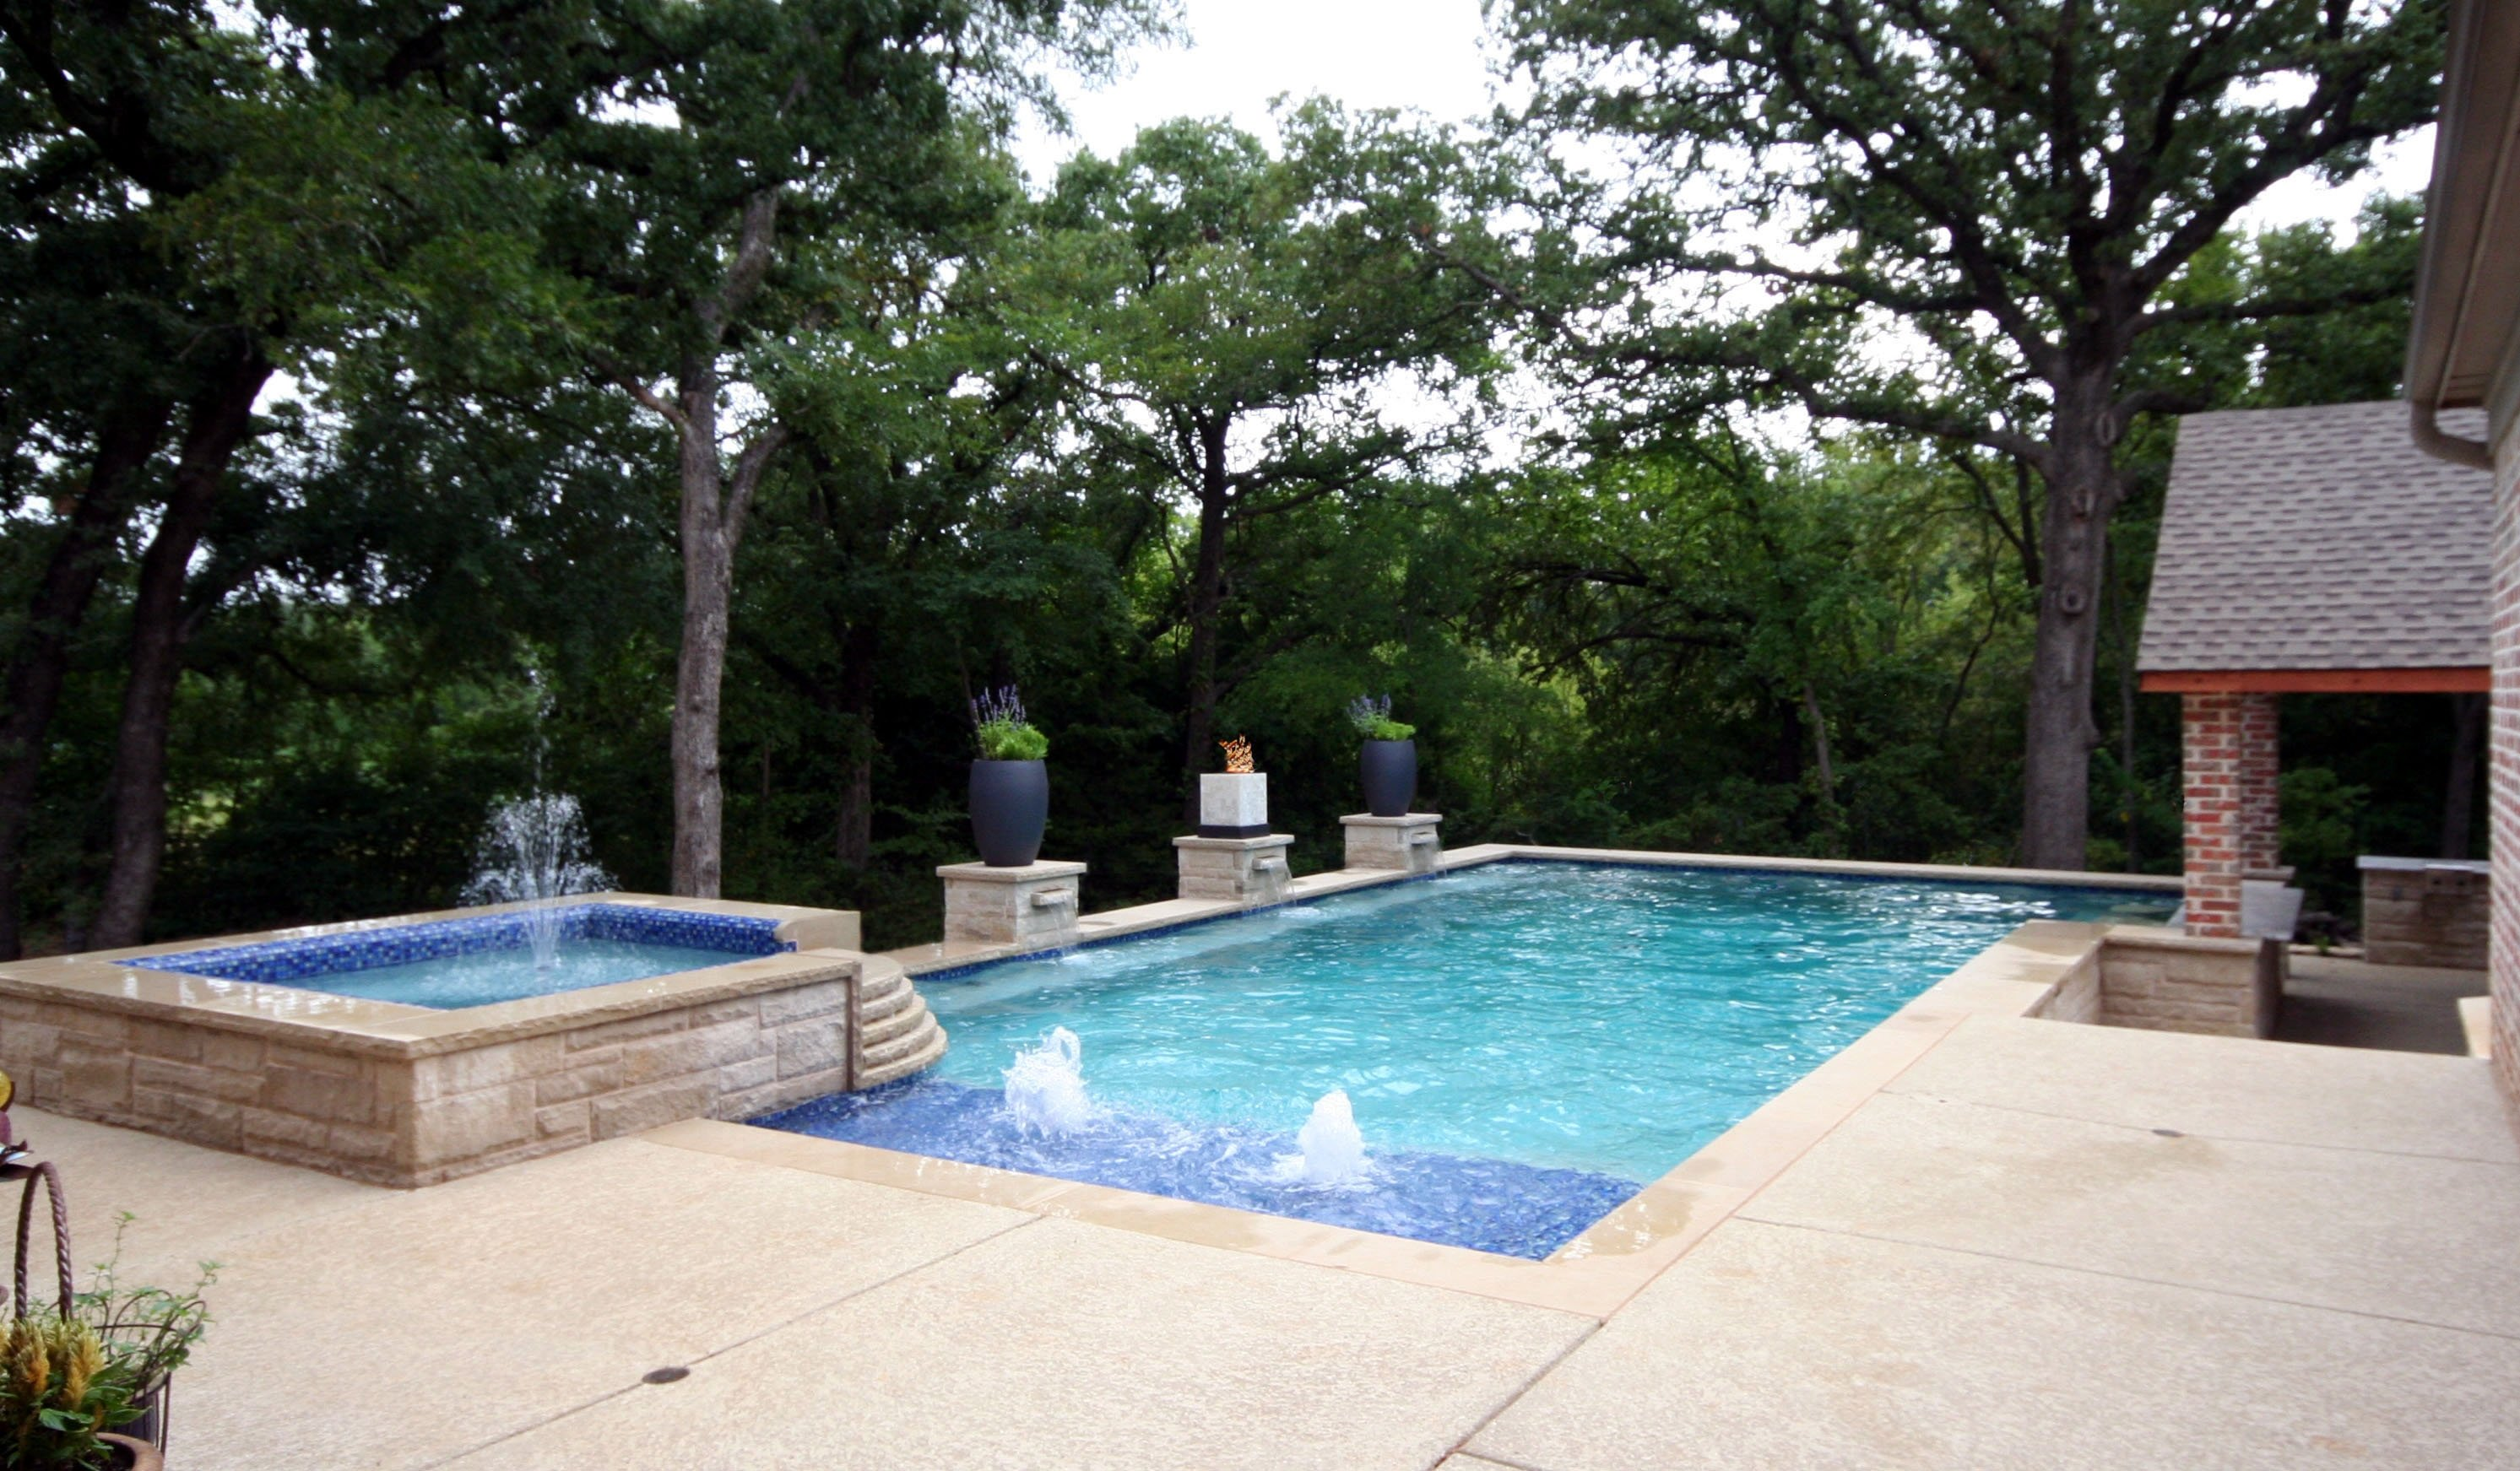 Traditional /Modern pool, Lueders coping, Sundek, Wet Edge Tahitian Blue plaster, Grand Effects Fire Feature, Rock Port fountains, Outdoor grill, Rock columns, large corner spa with rolled beam tile with fountain, Swim up granite bar with stools & Zodiac Equipment.